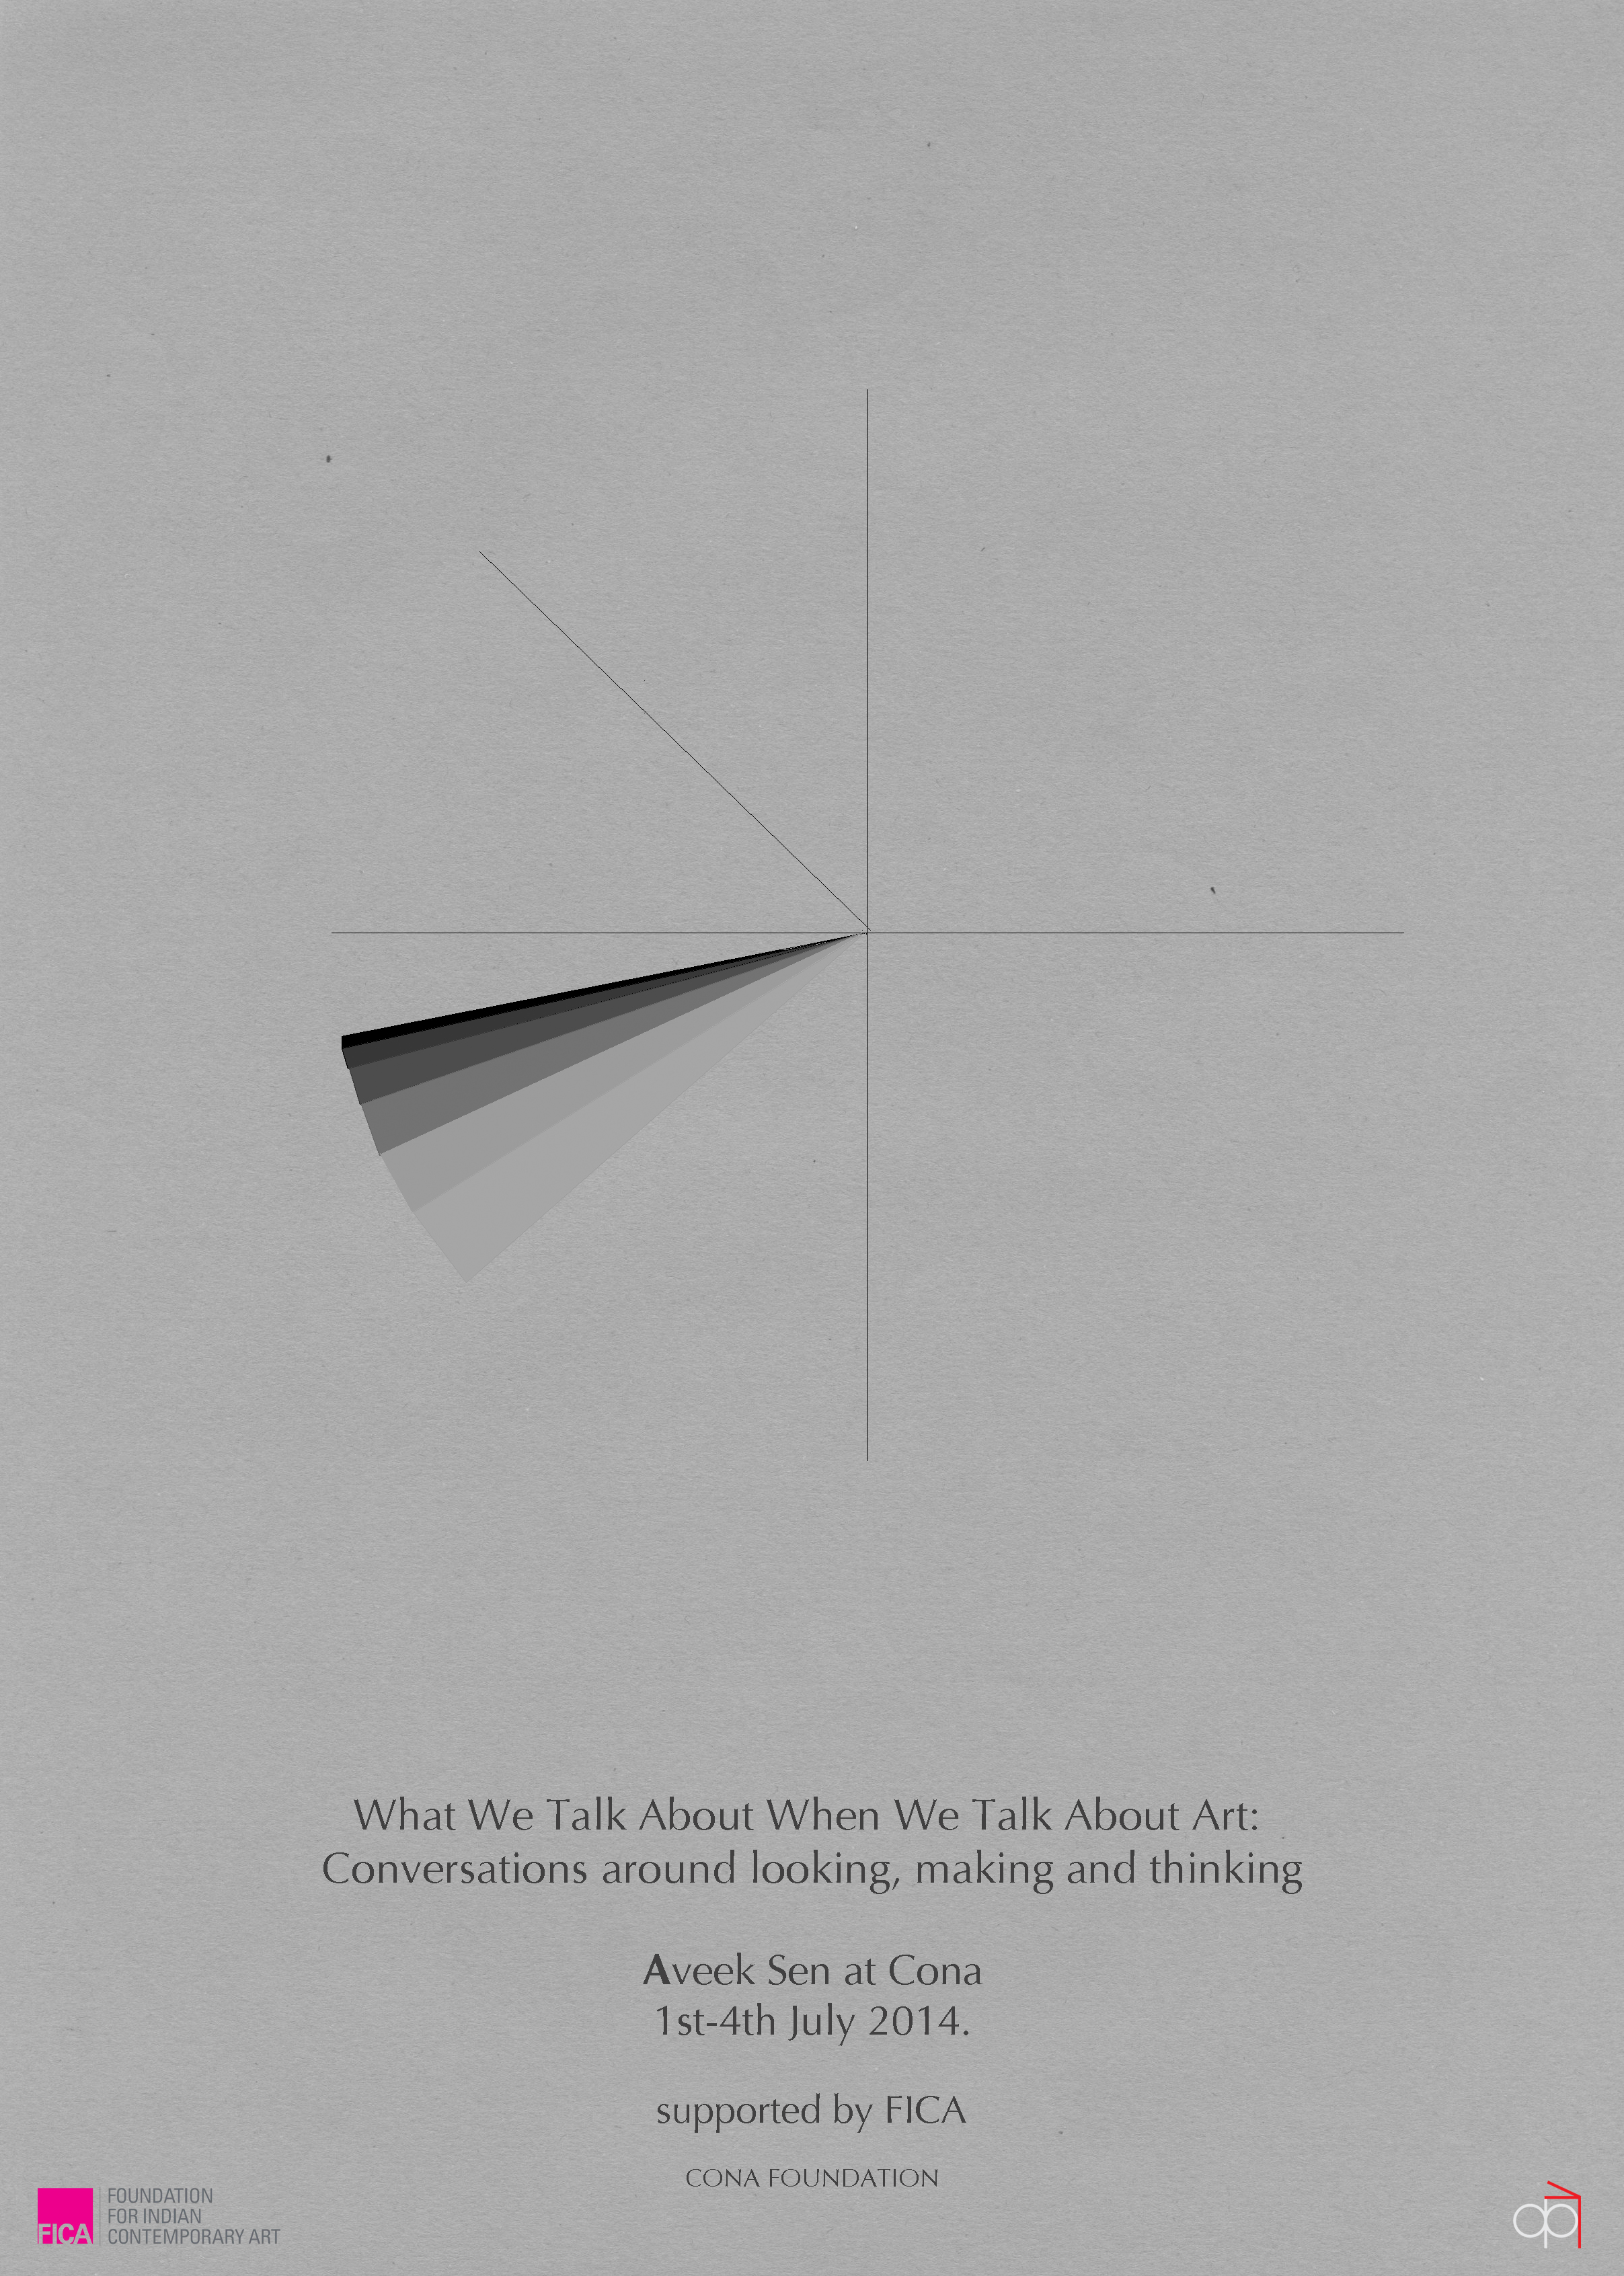 What We Talk About When We Talk About Art: Conversations aroundlooking, making and thinking